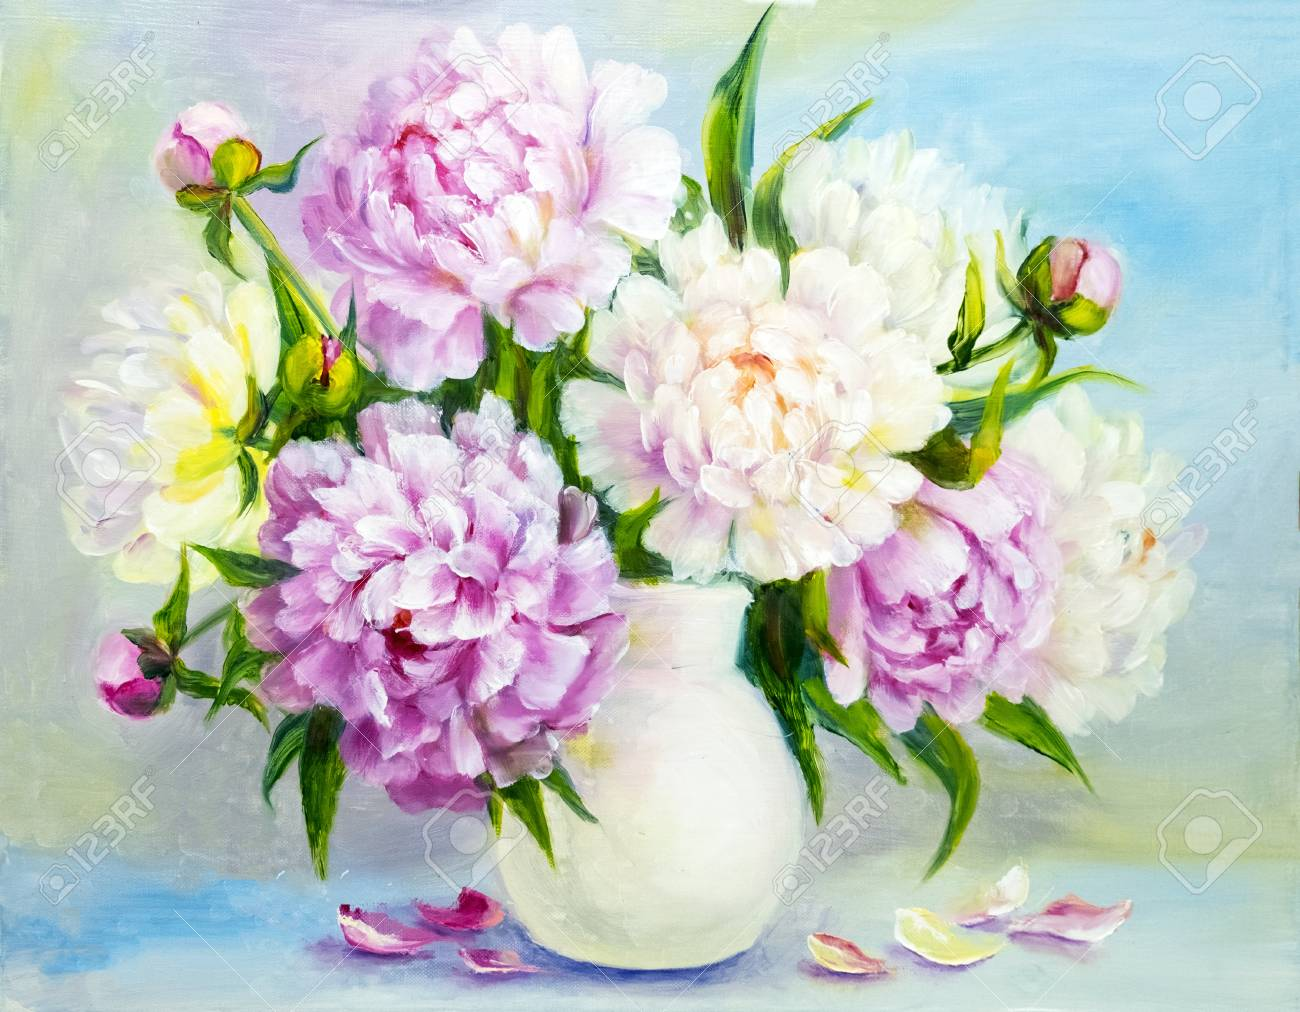 Peony pink flowers in a white vase. Oil painting illustration Stock Illustration - 71013877 & Peony Pink Flowers In A White Vase. Oil Painting Illustration Stock ...